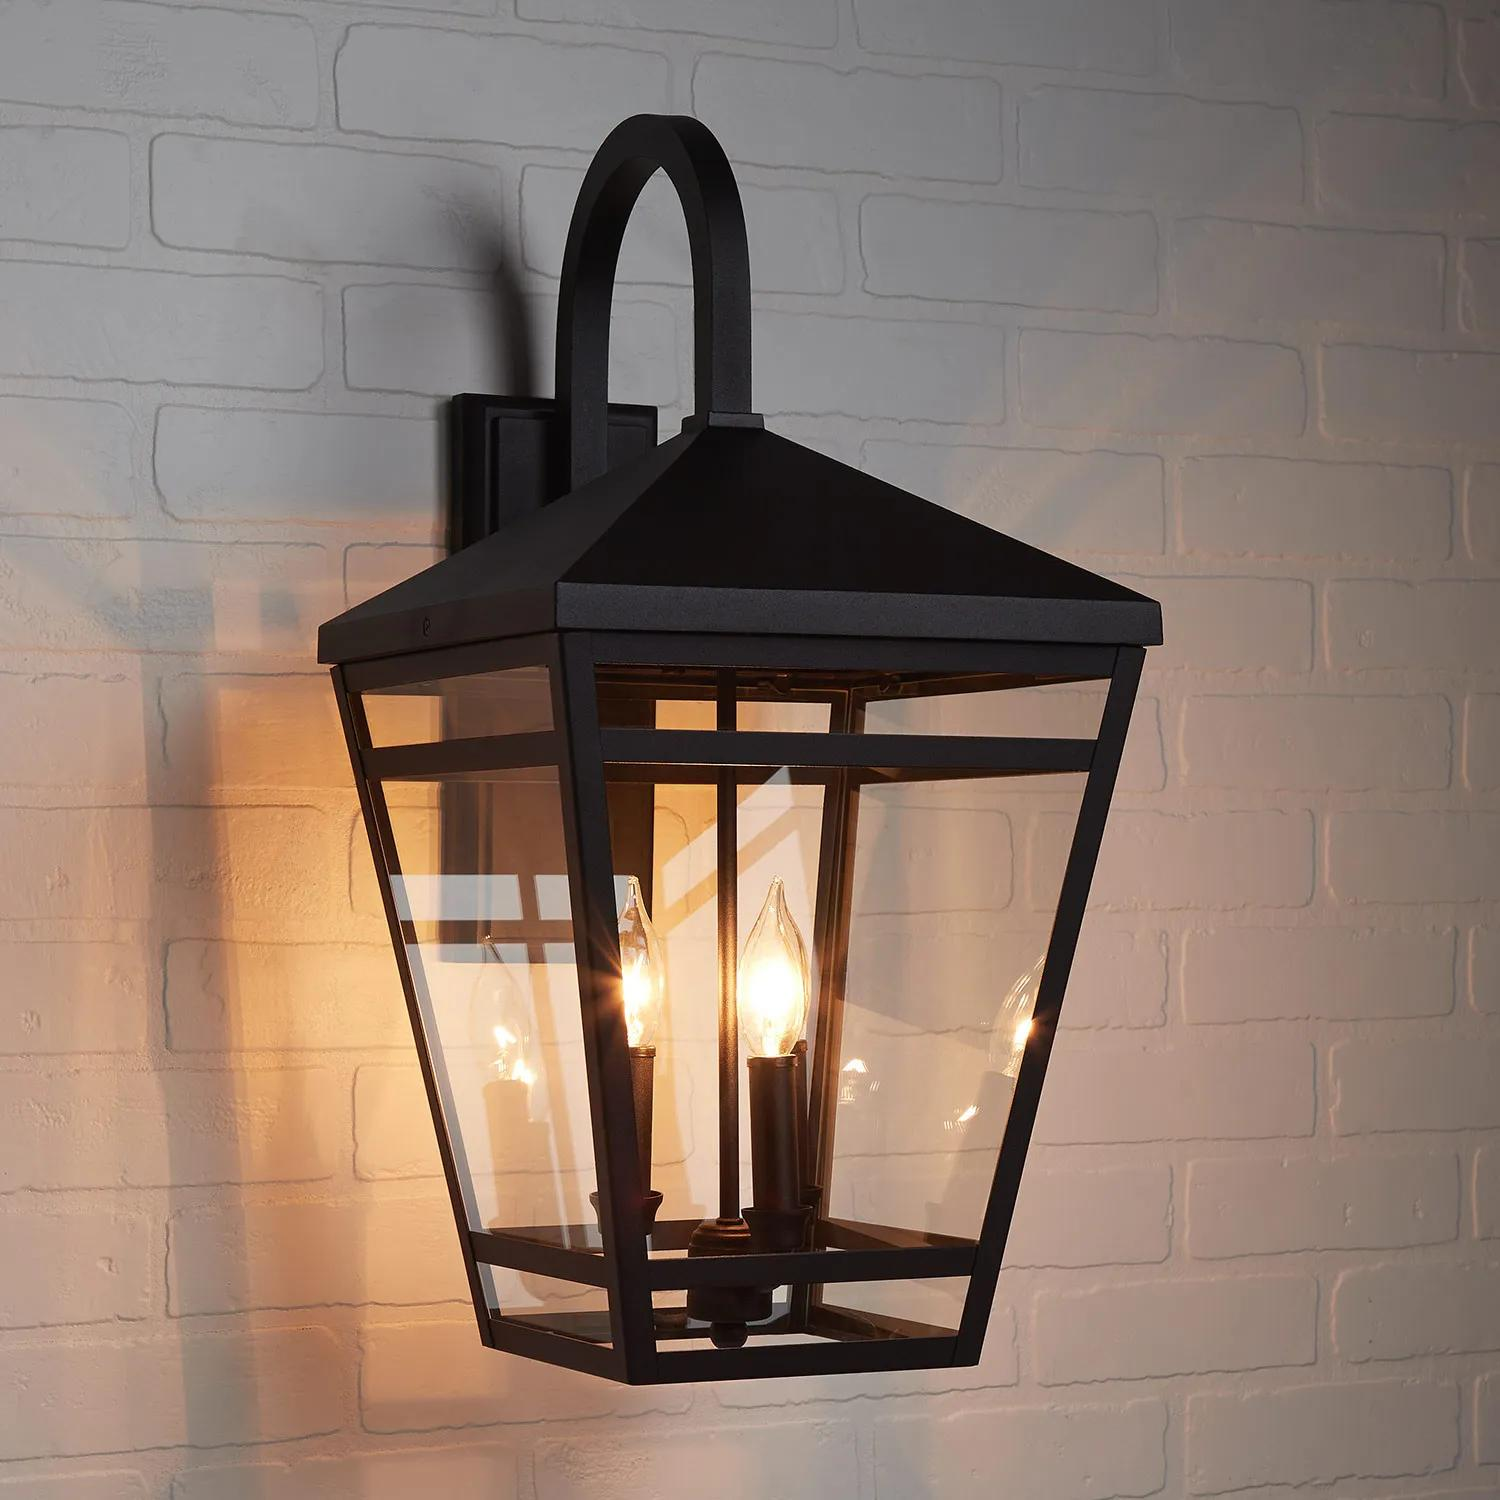 Edgehill 3 Light Outdoor Entrance Wall Sconce Black Outdoor Lighting Lighting